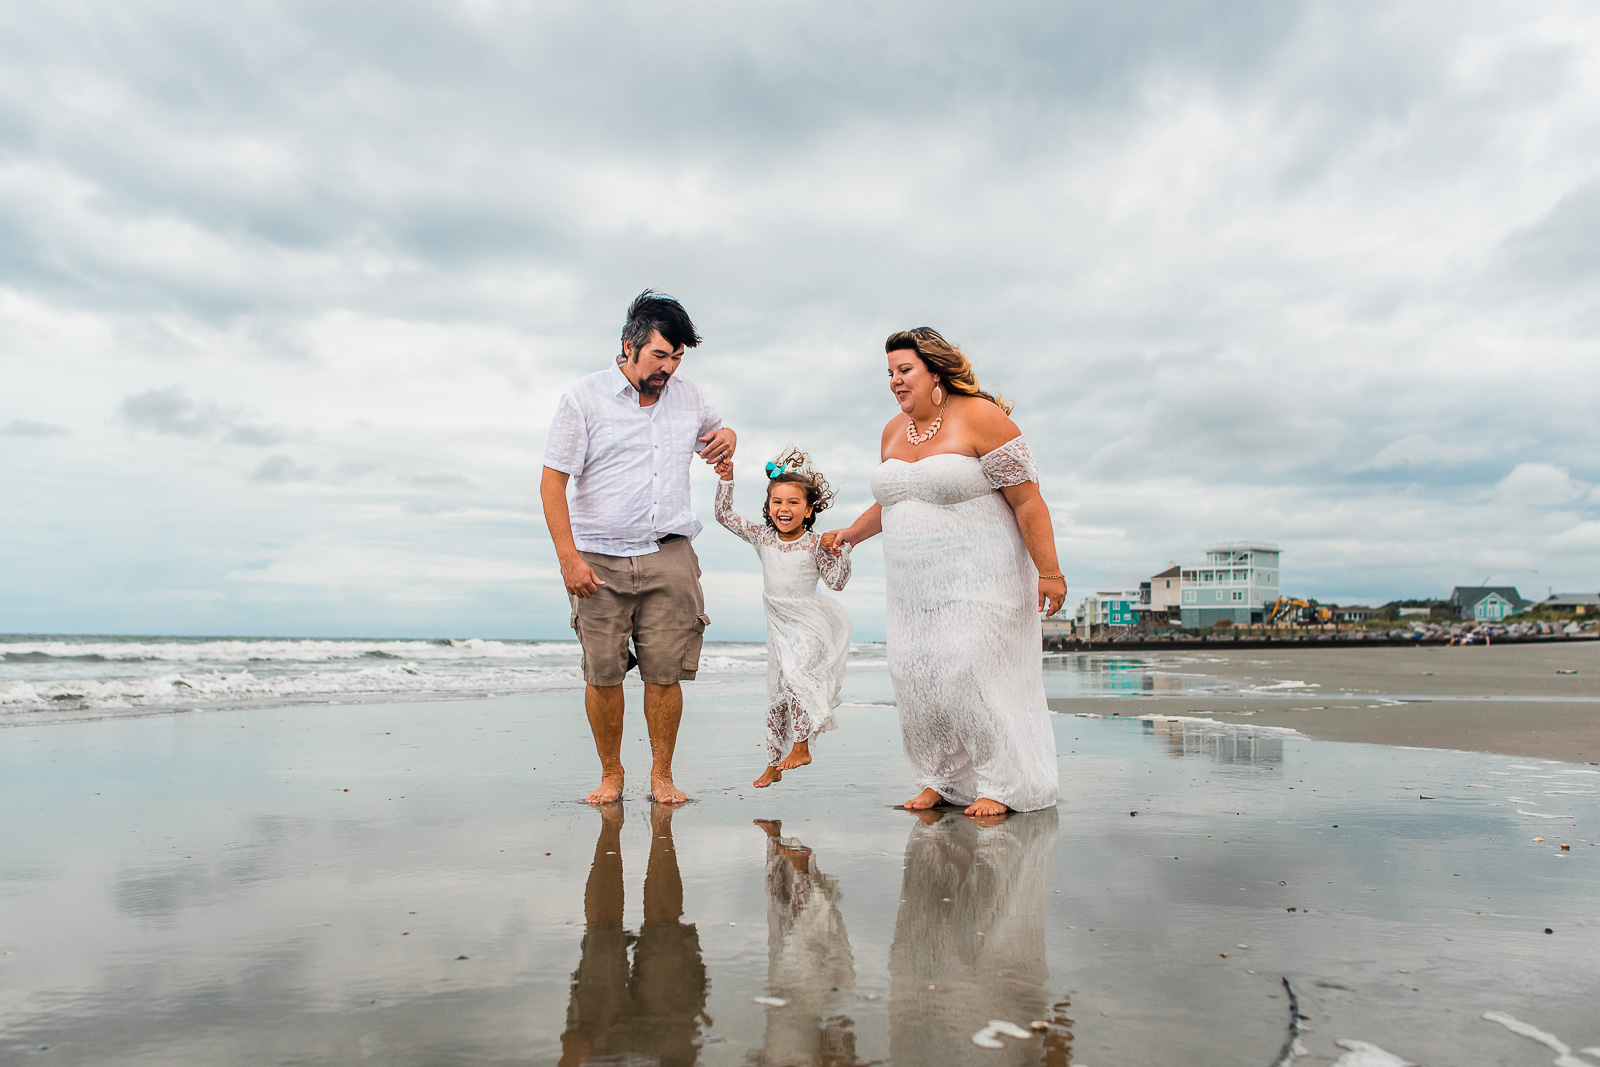 family-poses-mom-and-dad-swinging-daughter-on-beach_larissa-lord-photography-1-3